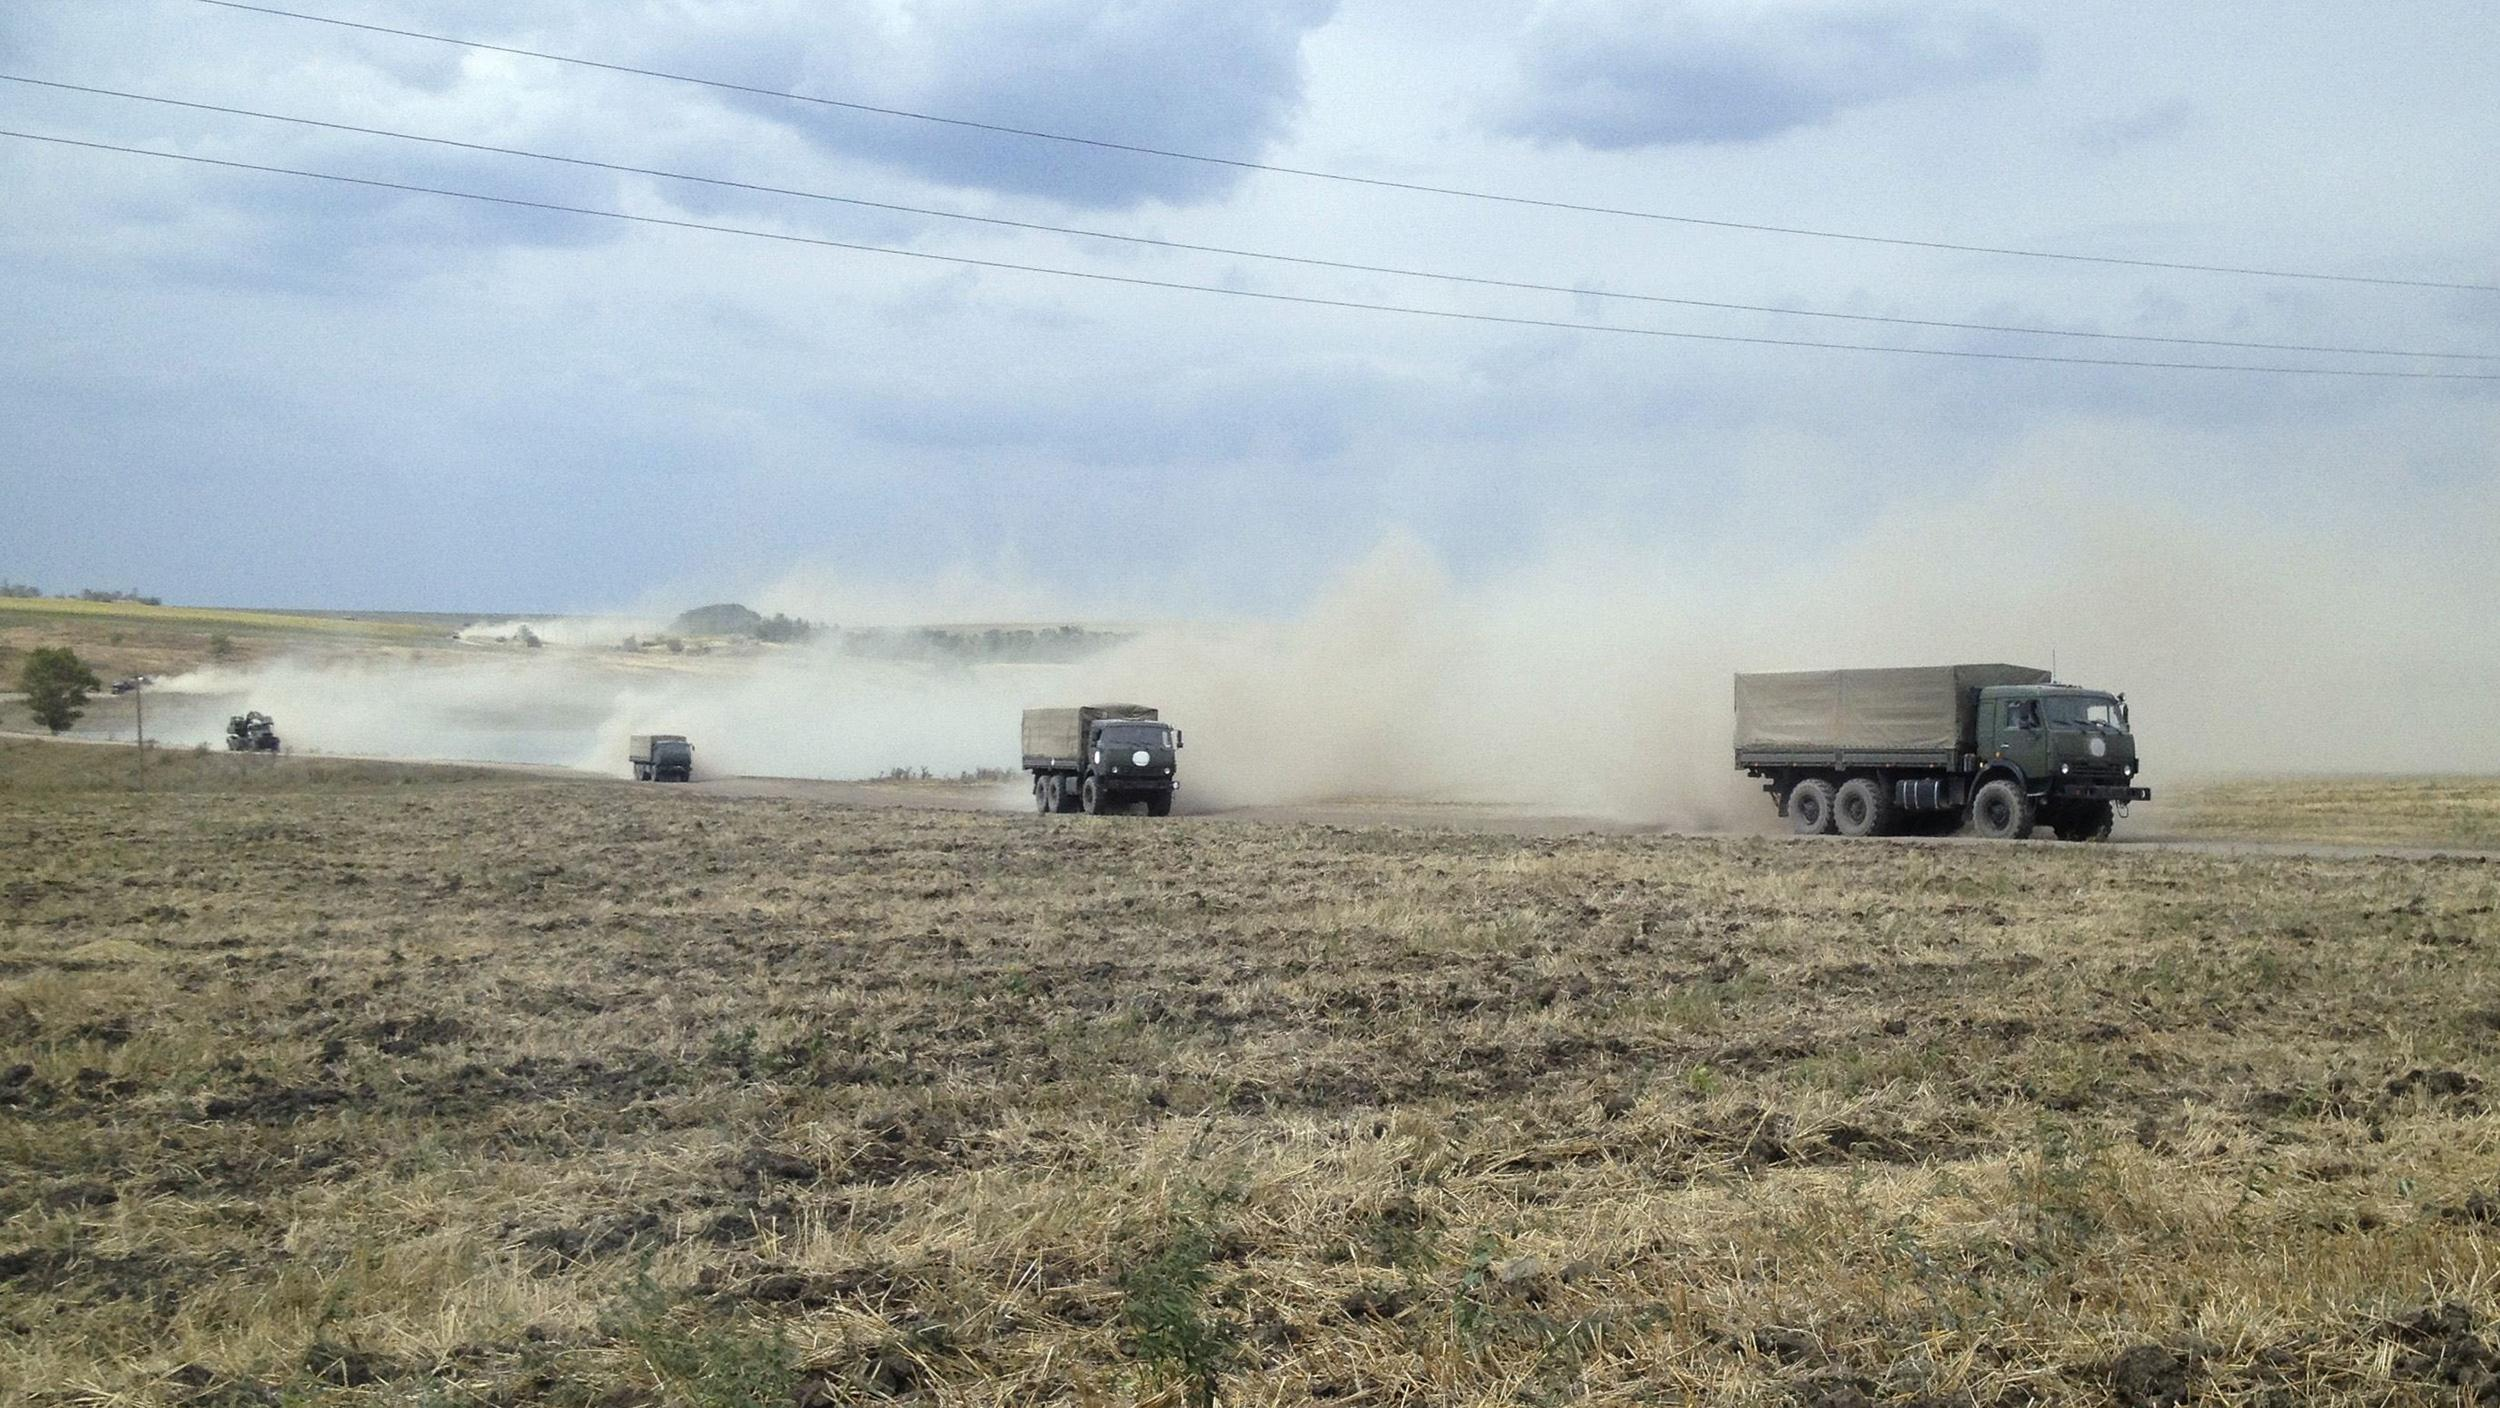 Image: Military trucks travel through the steppe near the village of Krasnodarovka